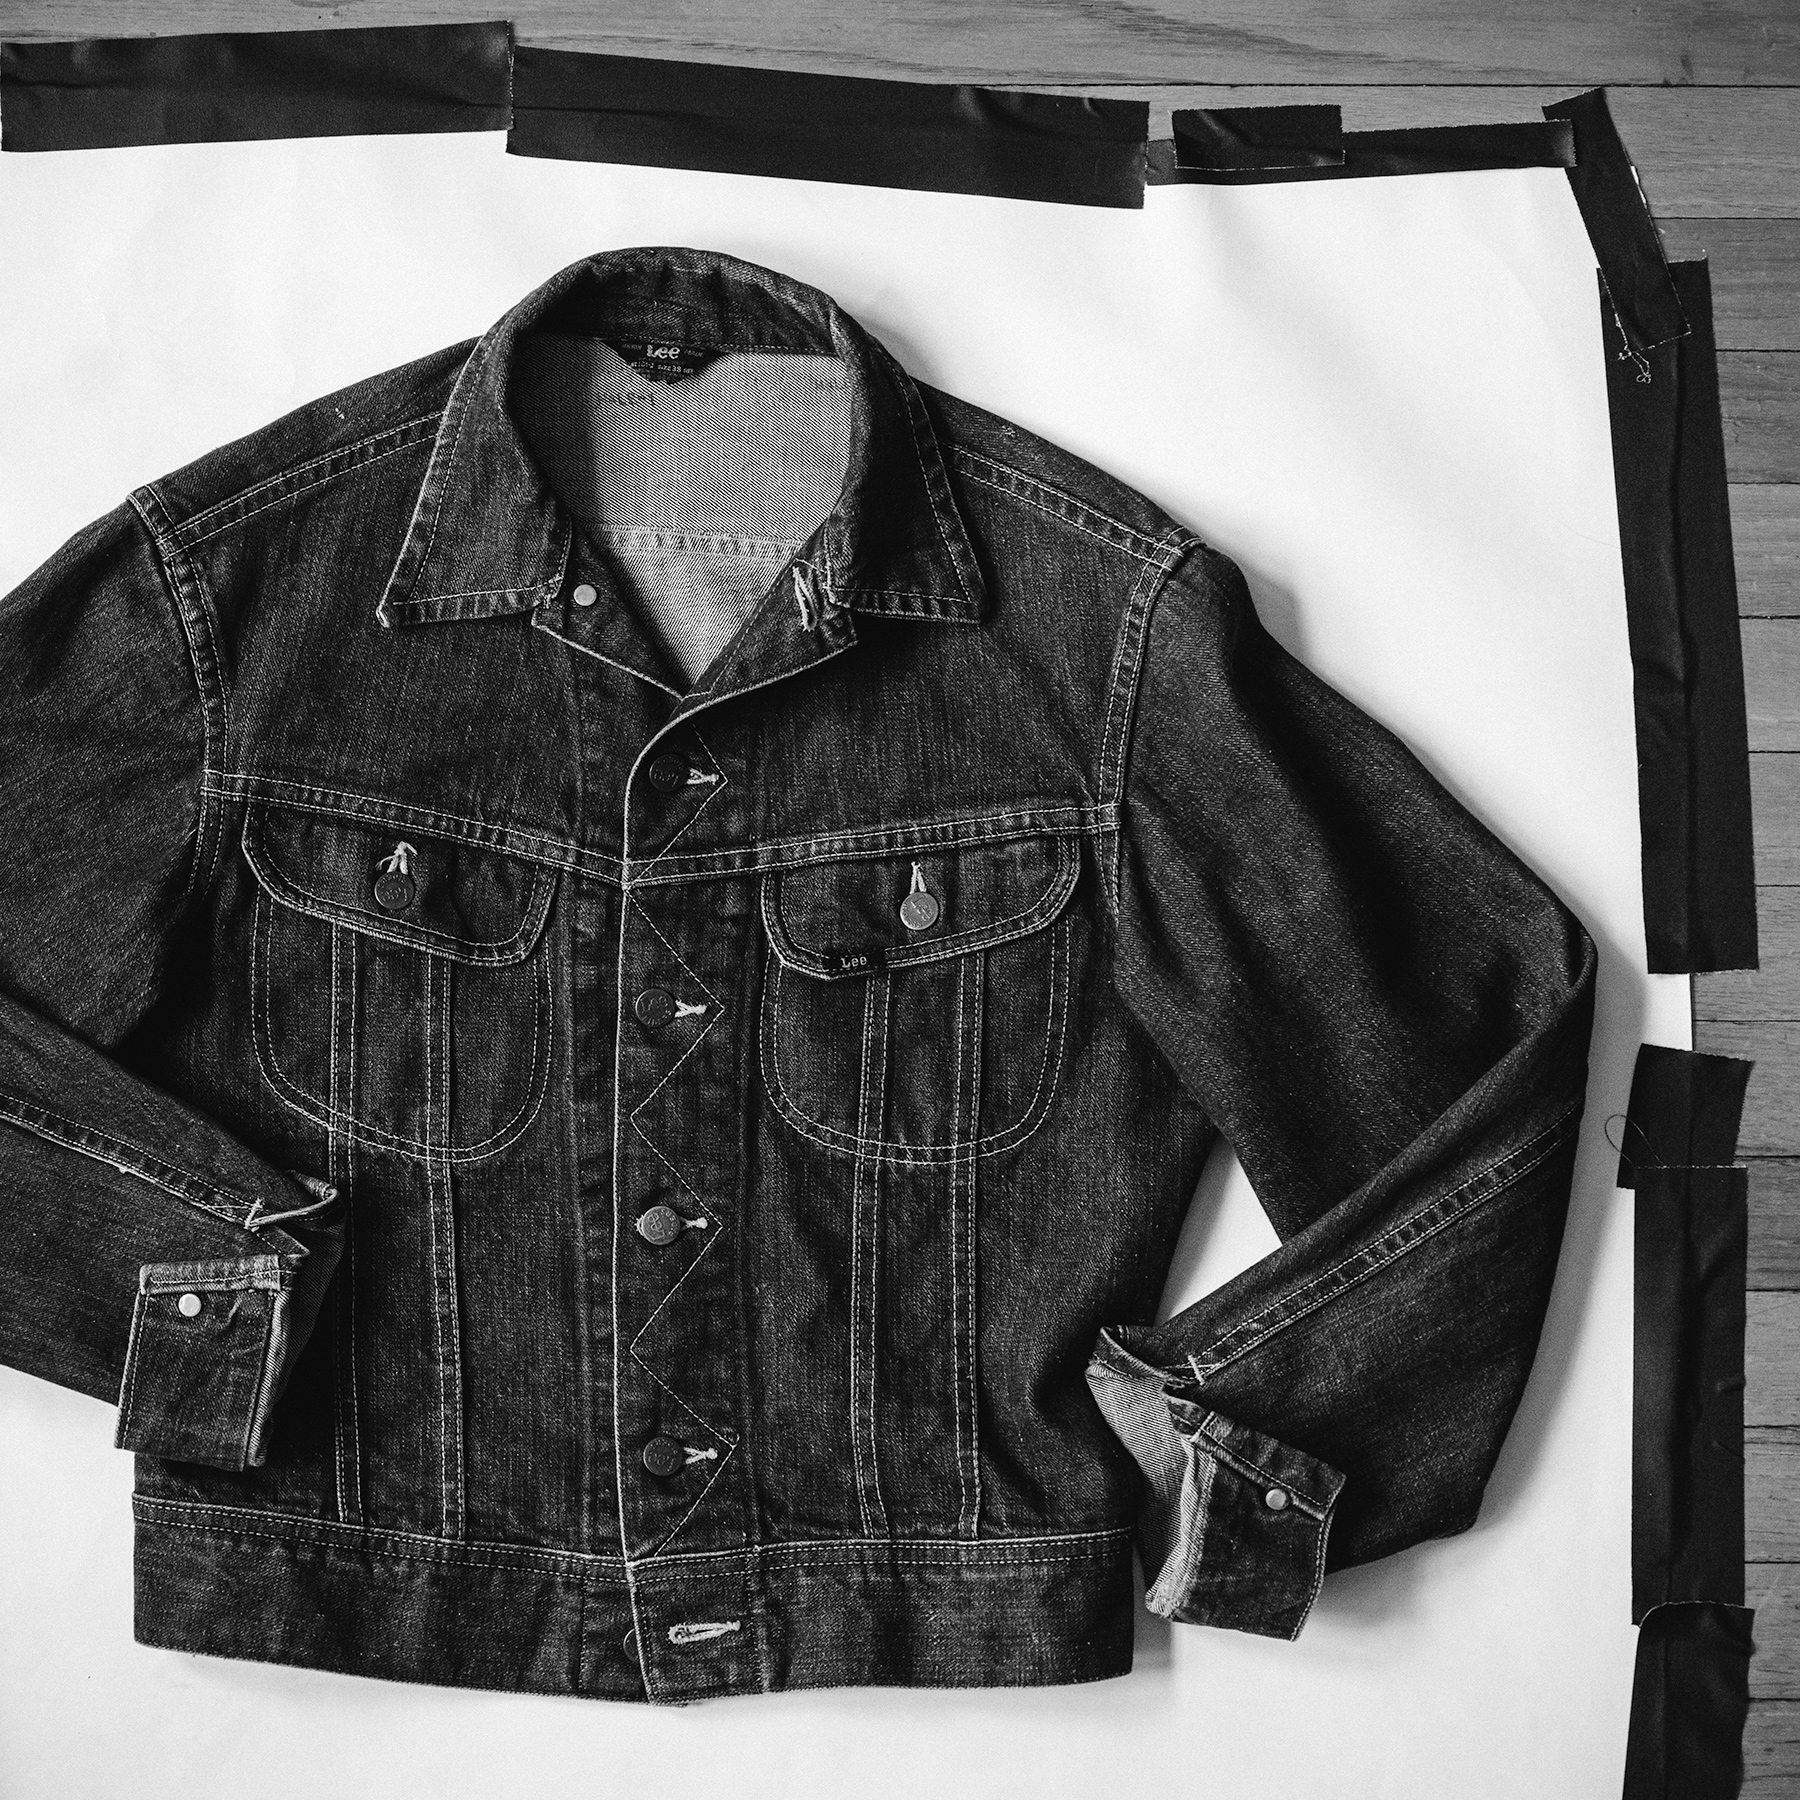 1950s/1960s Lee 101-J Denim Jacket